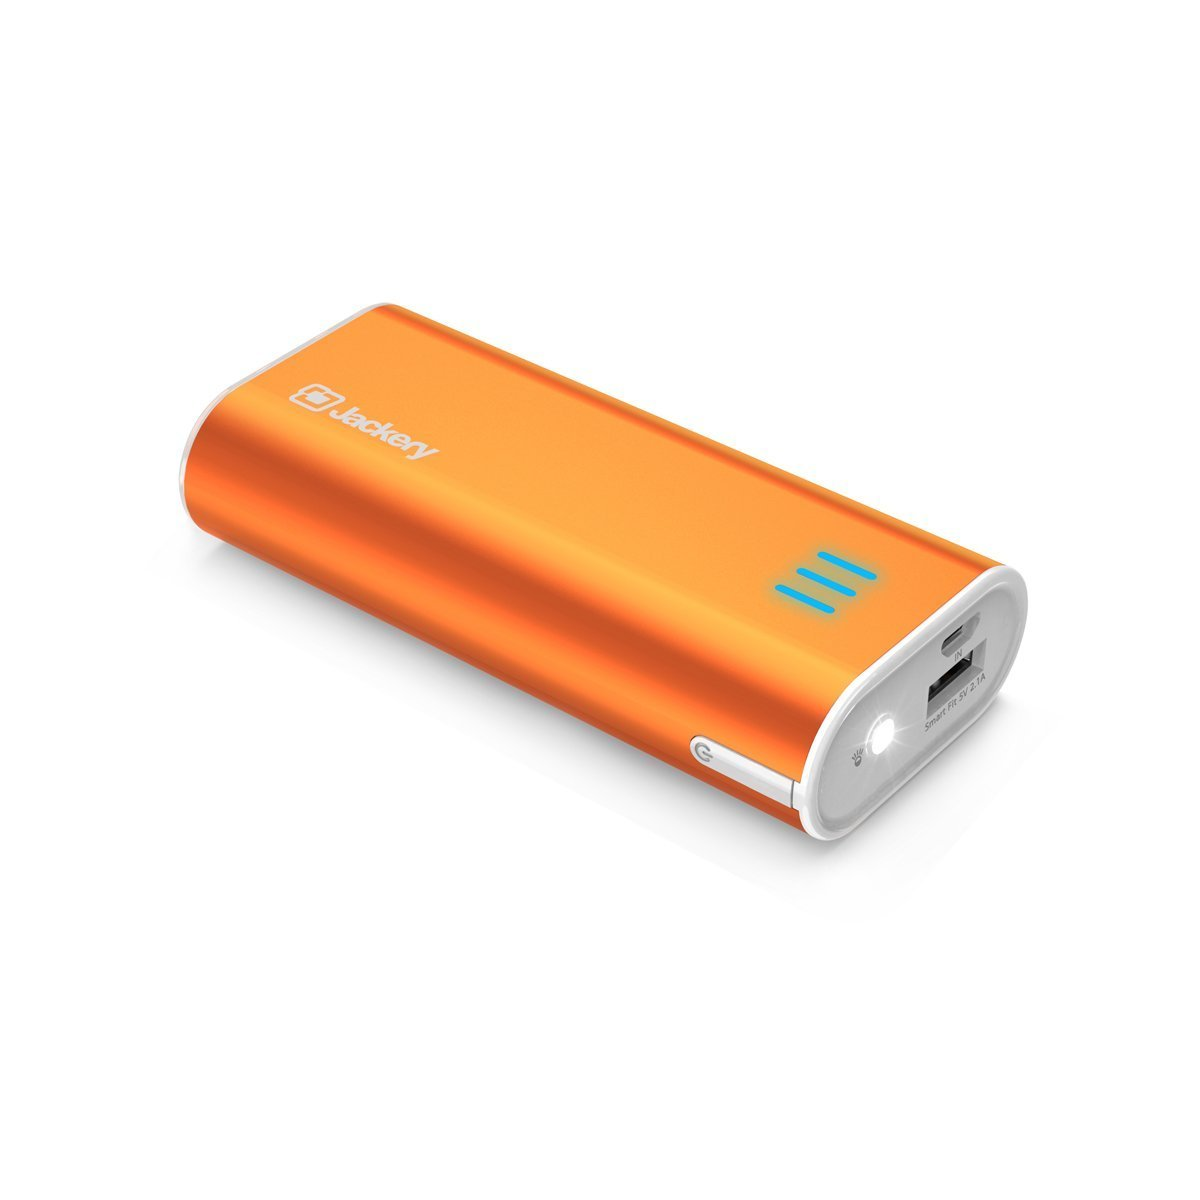 The perfect portable charger for blogging conferences! Small, lightweight, and bright orange! - http://amzn.to/2j9hrzJ